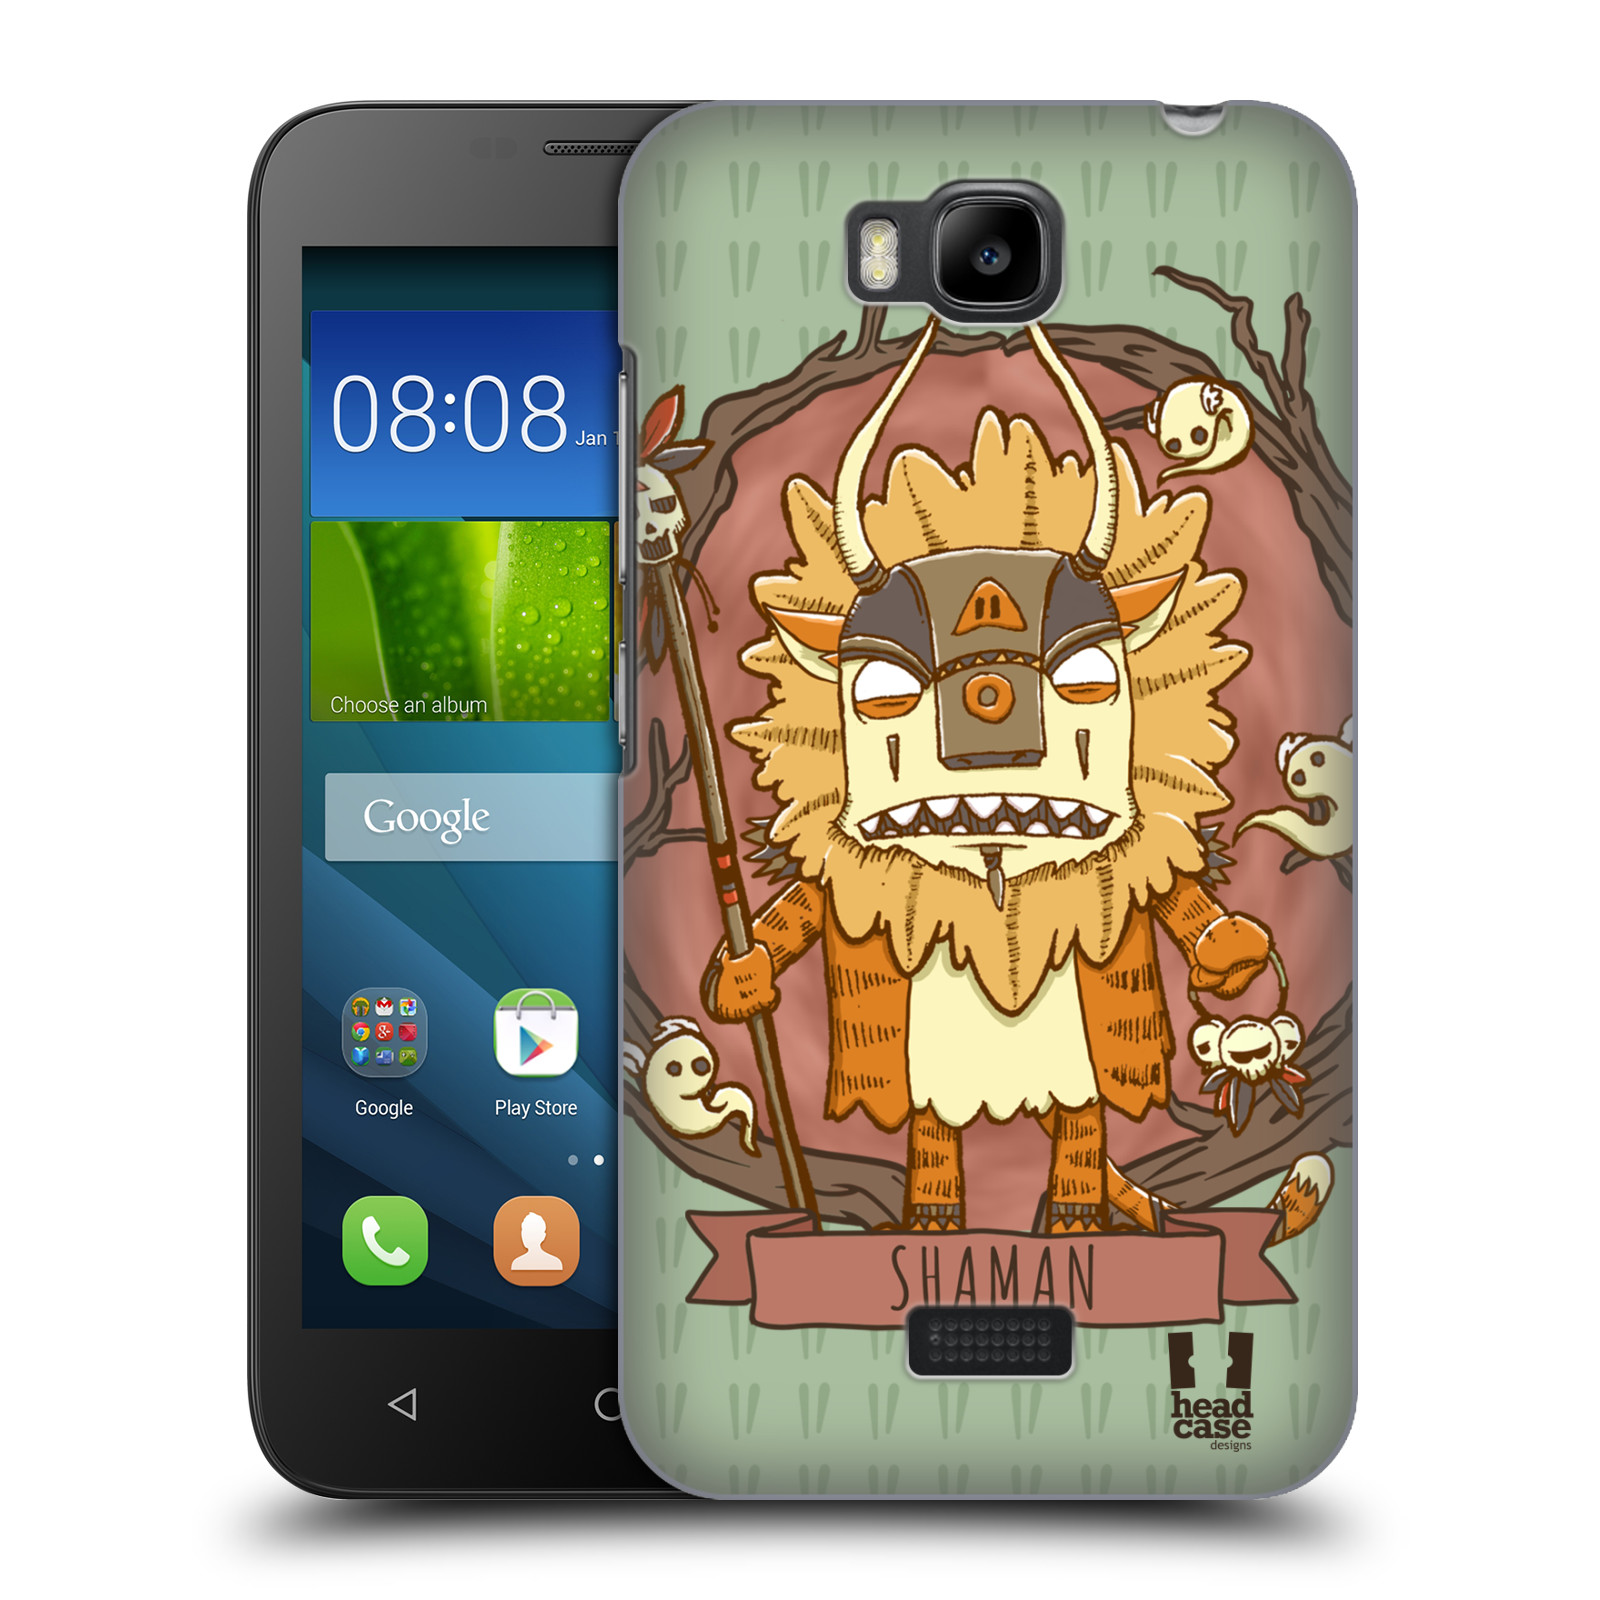 HEAD-CASE-DESIGNS-NATIVE-CREATURES-HARD-BACK-CASE-FOR-HUAWEI-PHONES-2